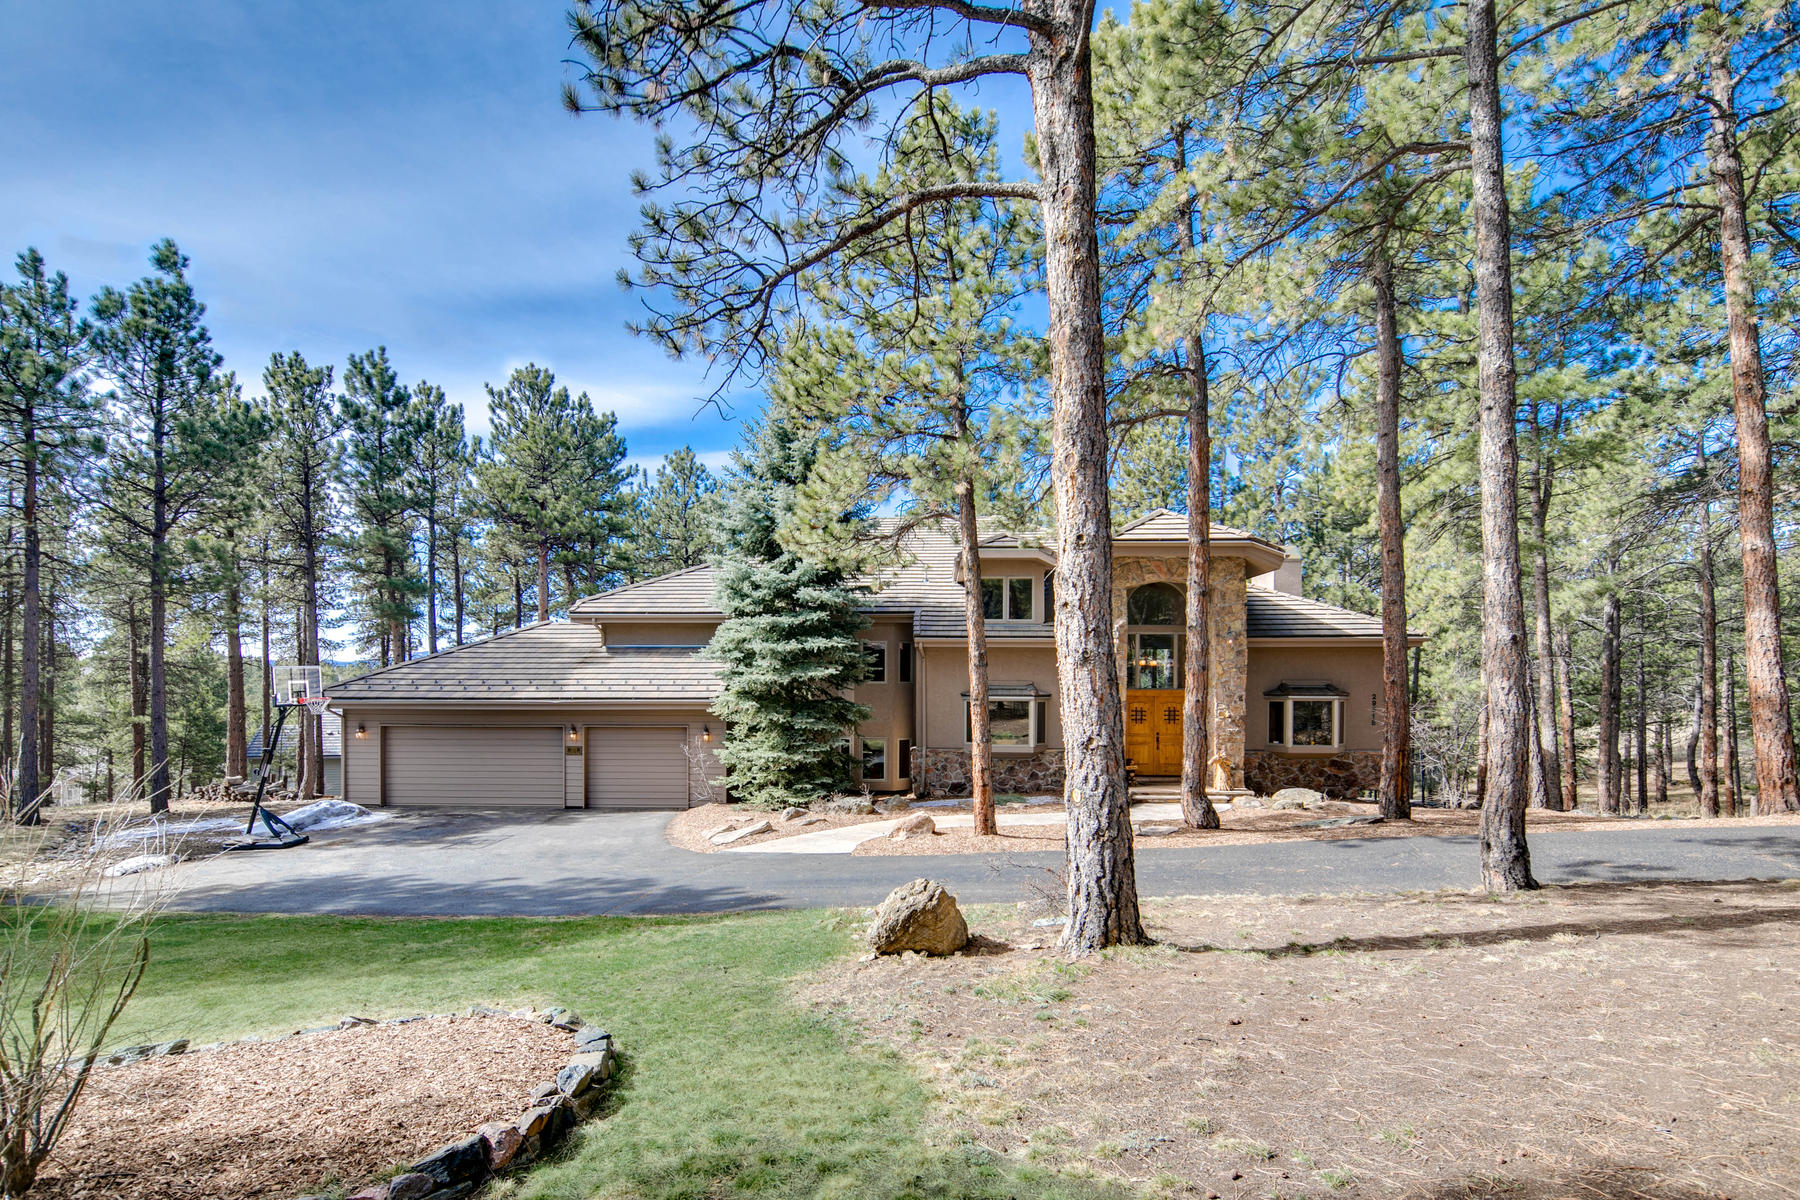 Single Family Home for Active at Private Mountain Home on a Tranquil 1.27 Acre Lot 29518 Gleneden Lane Evergreen, Colorado 80439 United States